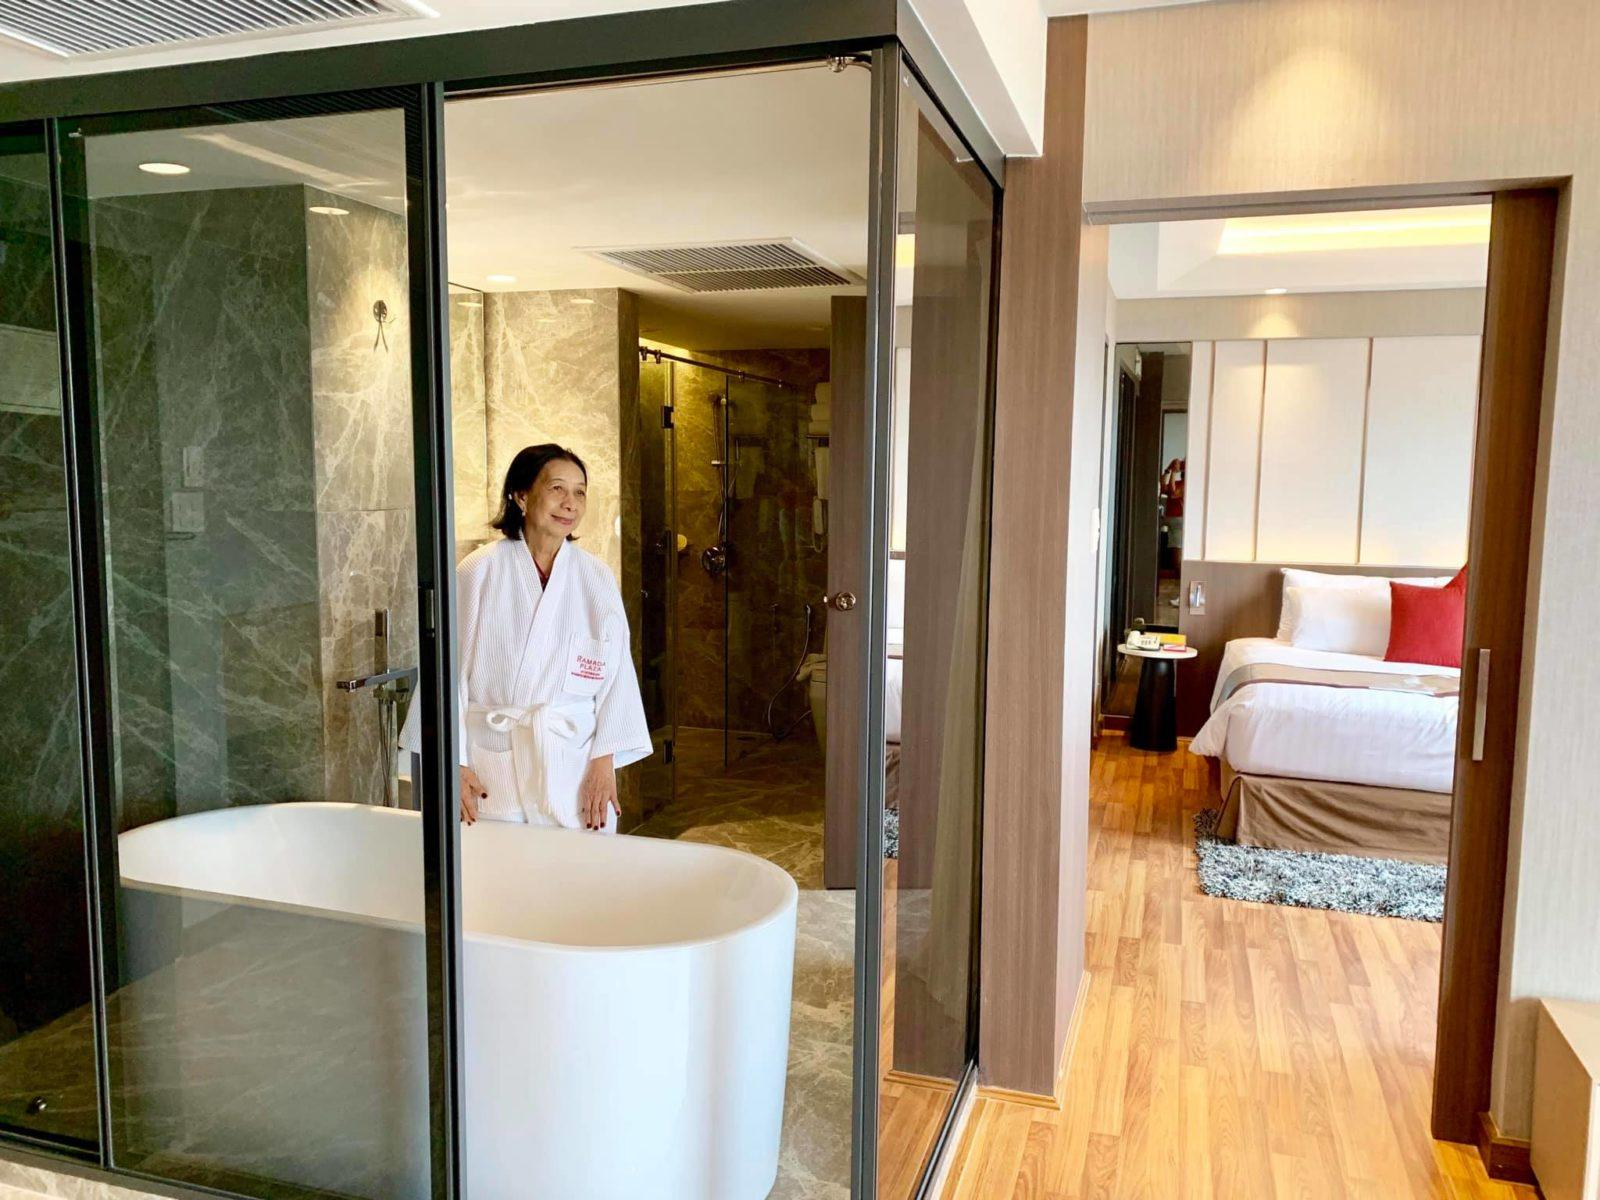 Our Luxurious Staycation At Ramada Plaza In Bangkok And Our Tour With Tinggly Experiences32